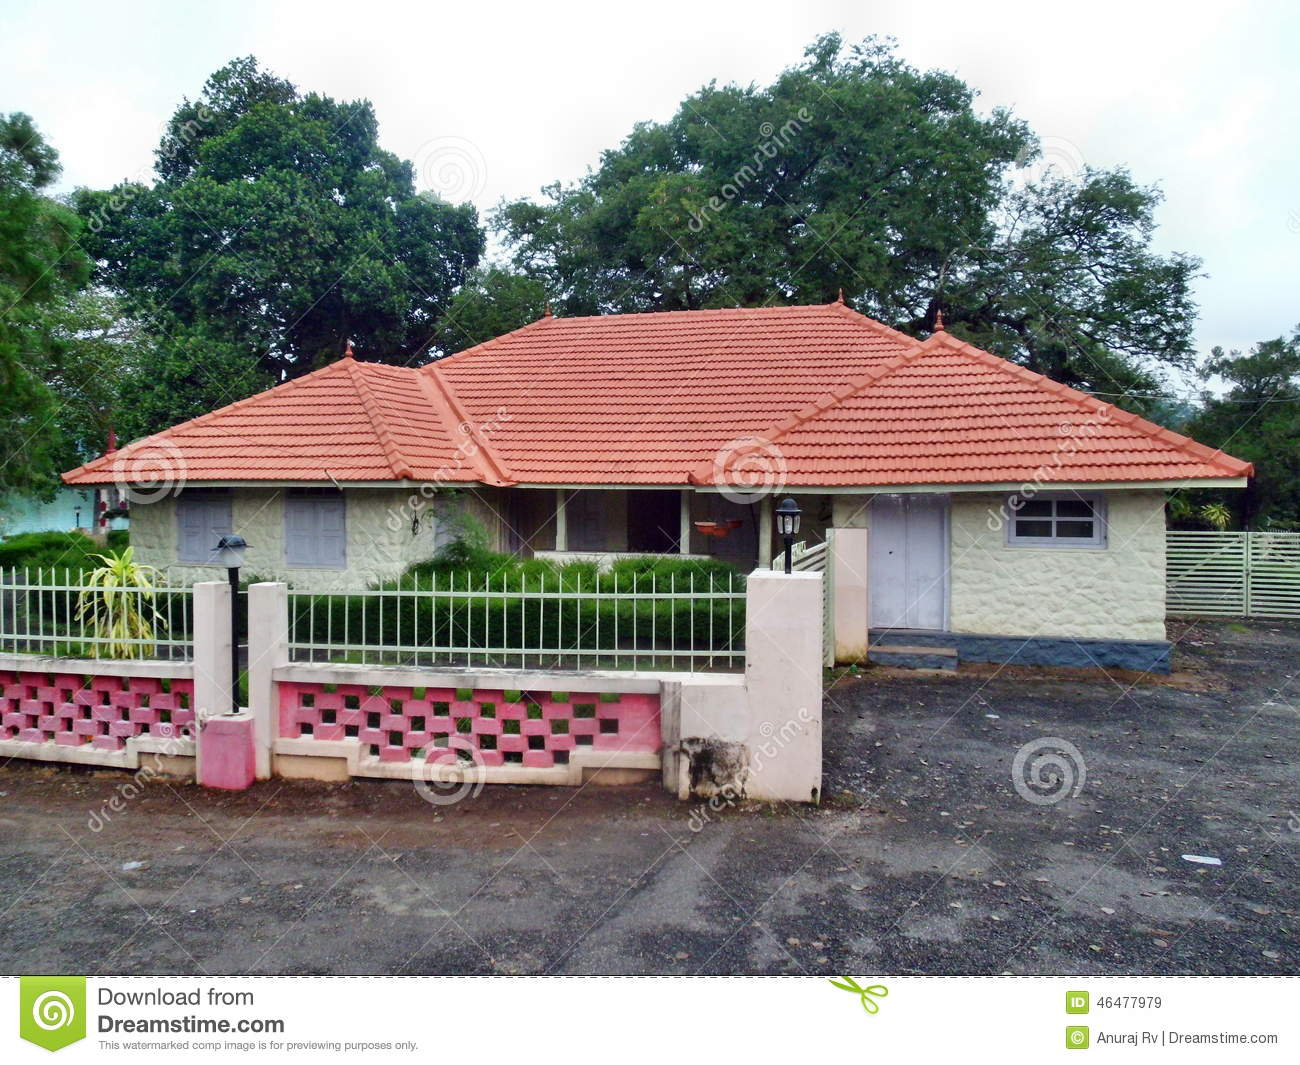 Kerala model house stock image image of building road for Small house images in kerala